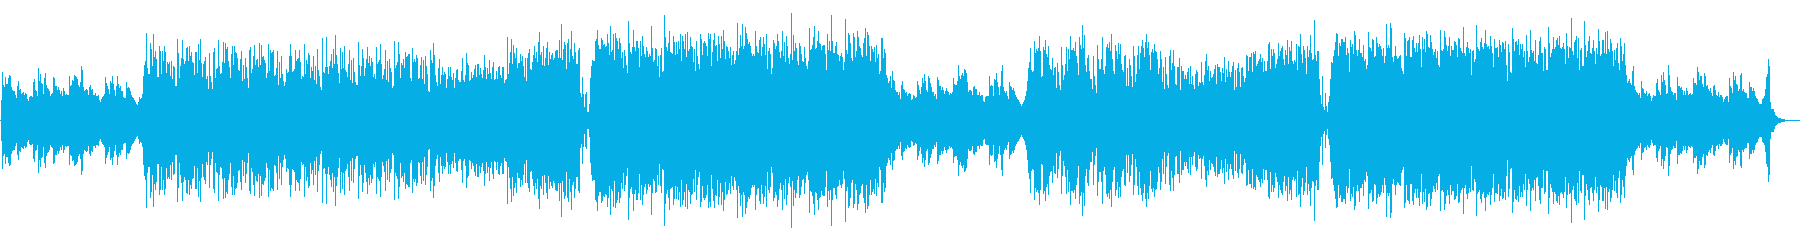 Violin House's reproduced waveform